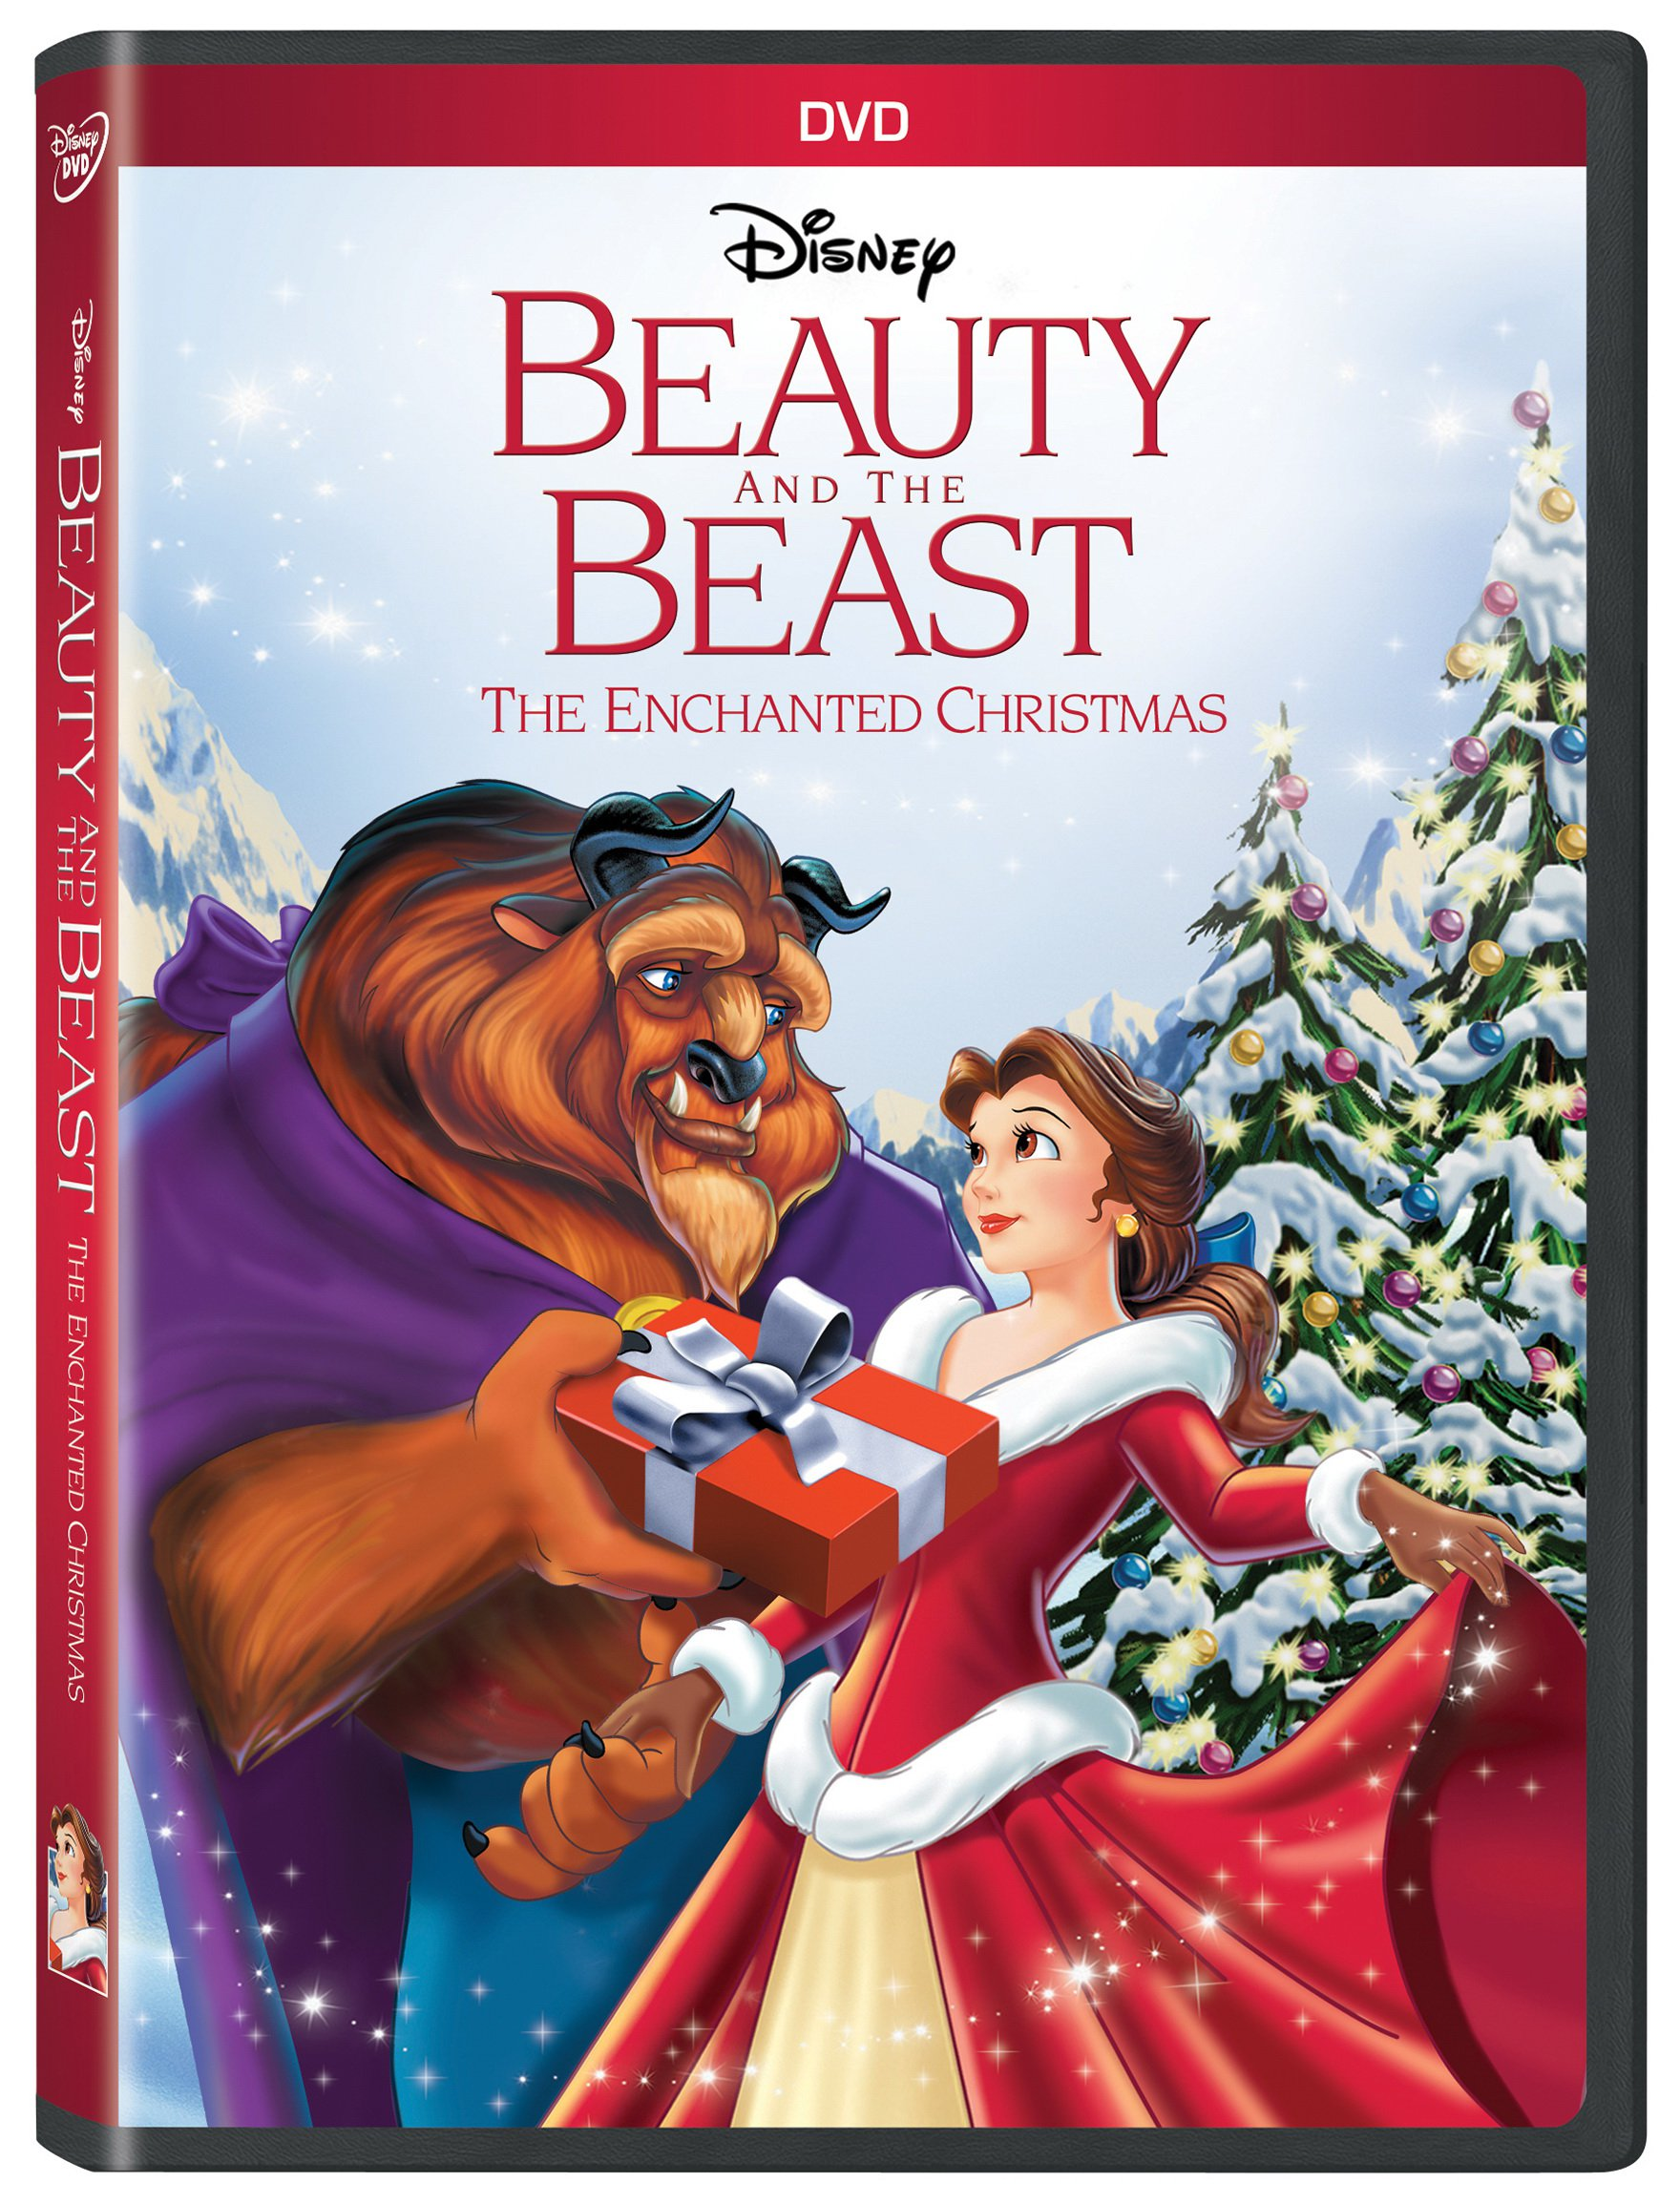 Beauty And The Beast: The Enchanted Christmas Home Video Re-Release Coming Soon